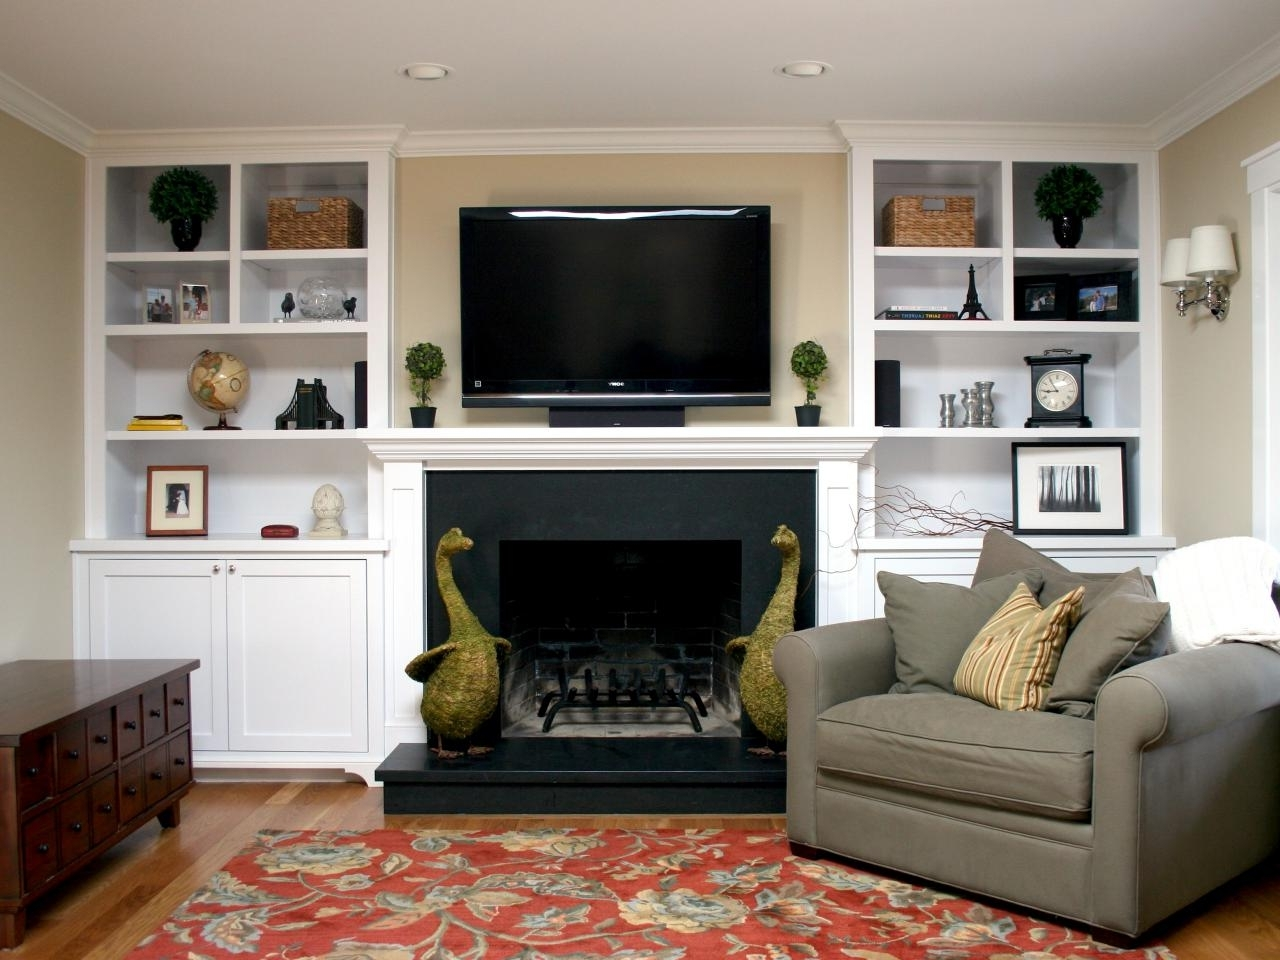 Built In Bookcases With Tv For Well Known Fireplace With Sculpture Animals Plus Wall Tv Also Built In White (View 3 of 15)